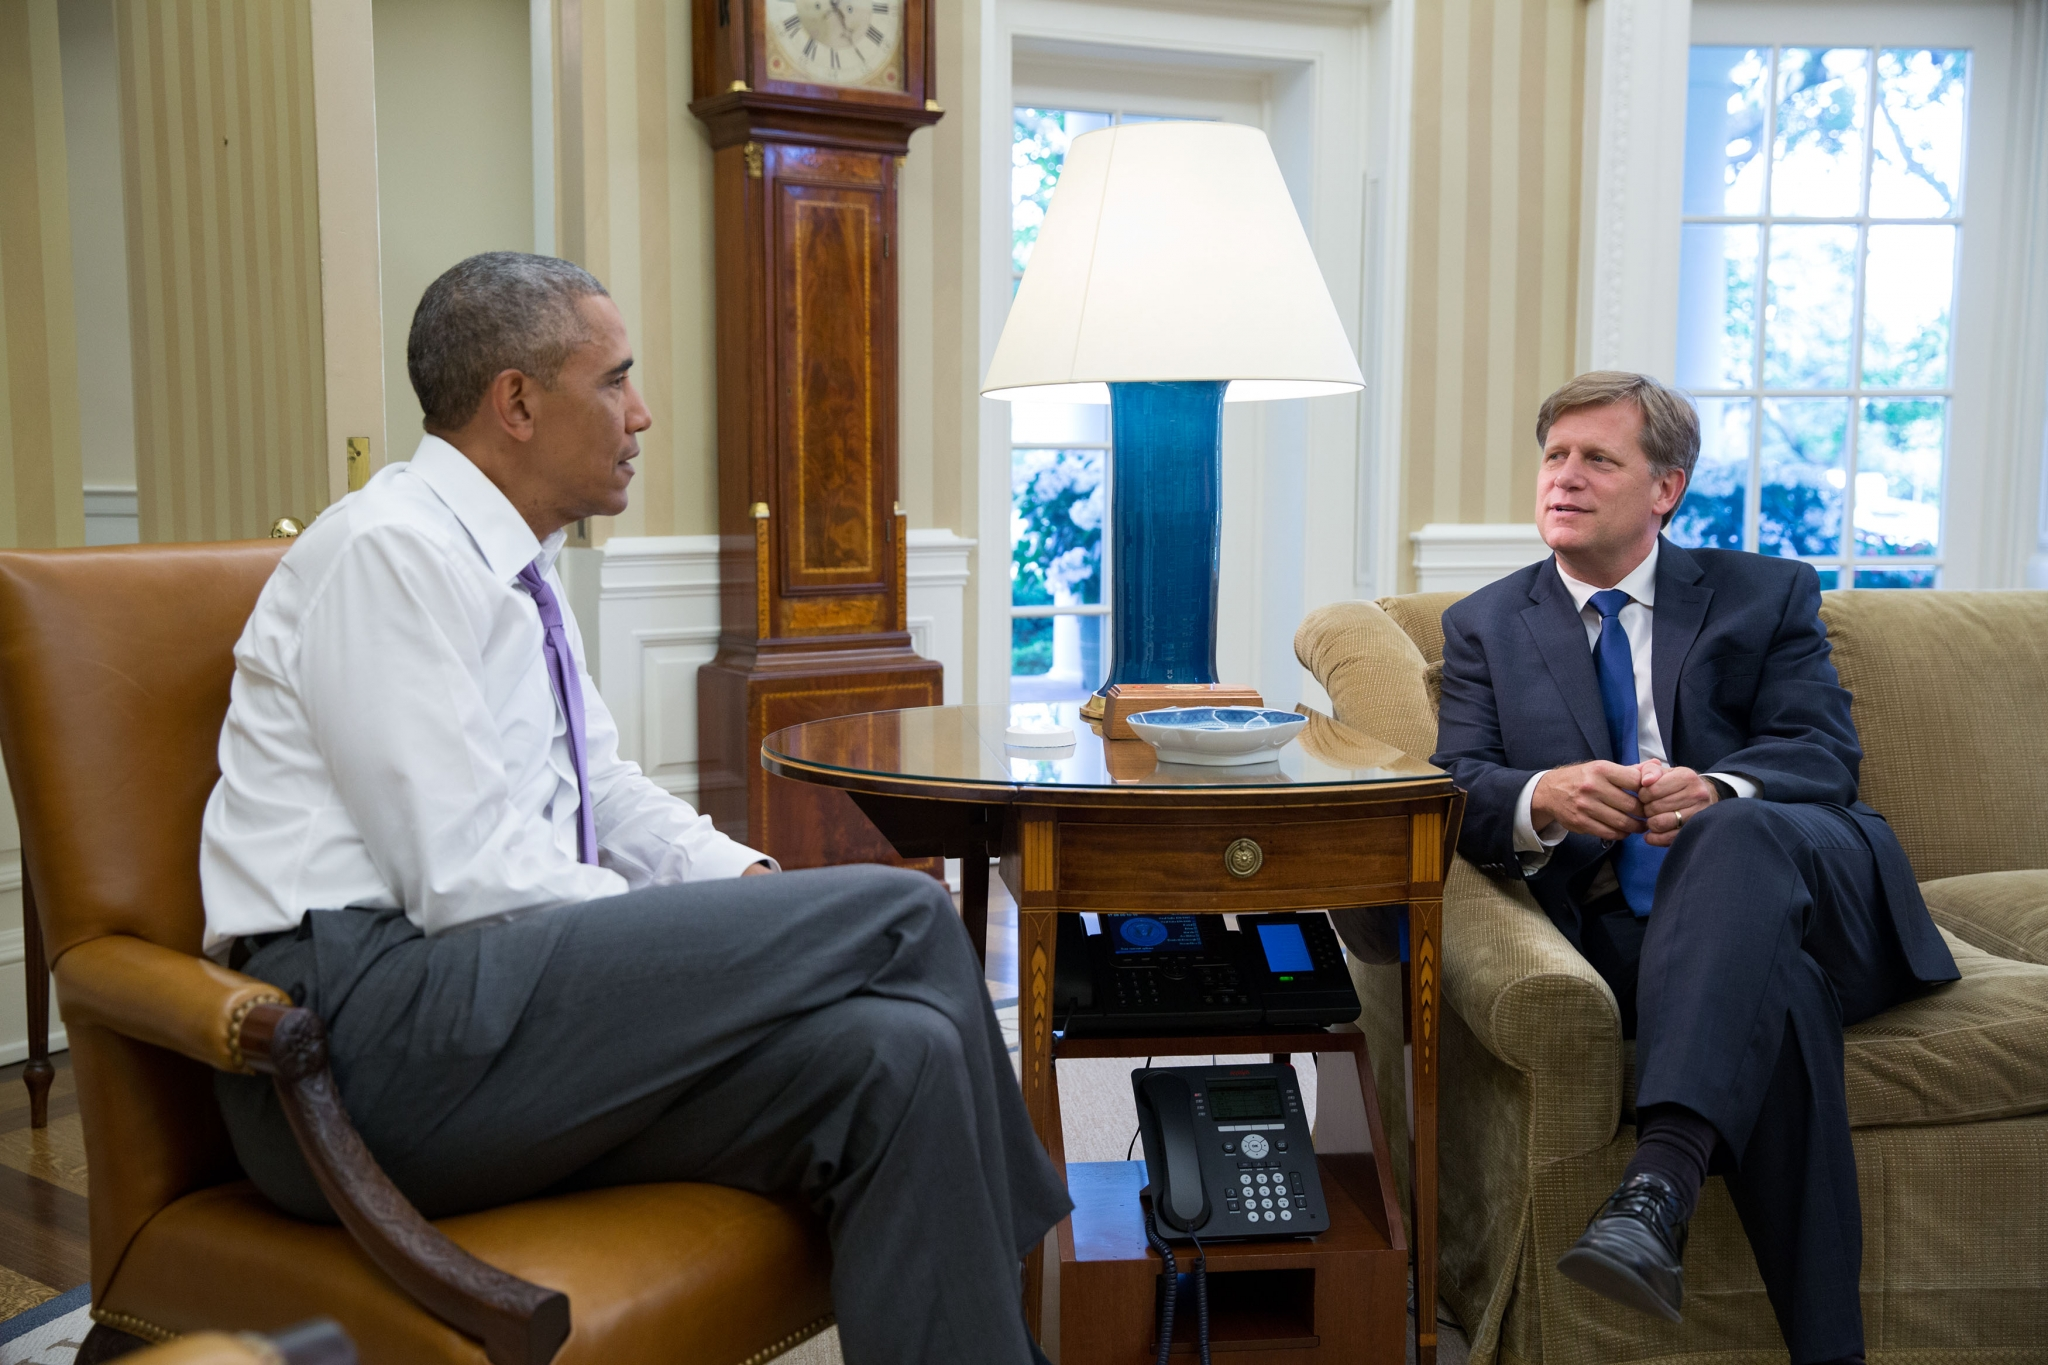 President Barack Obama meets with Mike McFaul in the Oval Office, June 10, 2016. (Official White House Photo by Pete Souza)